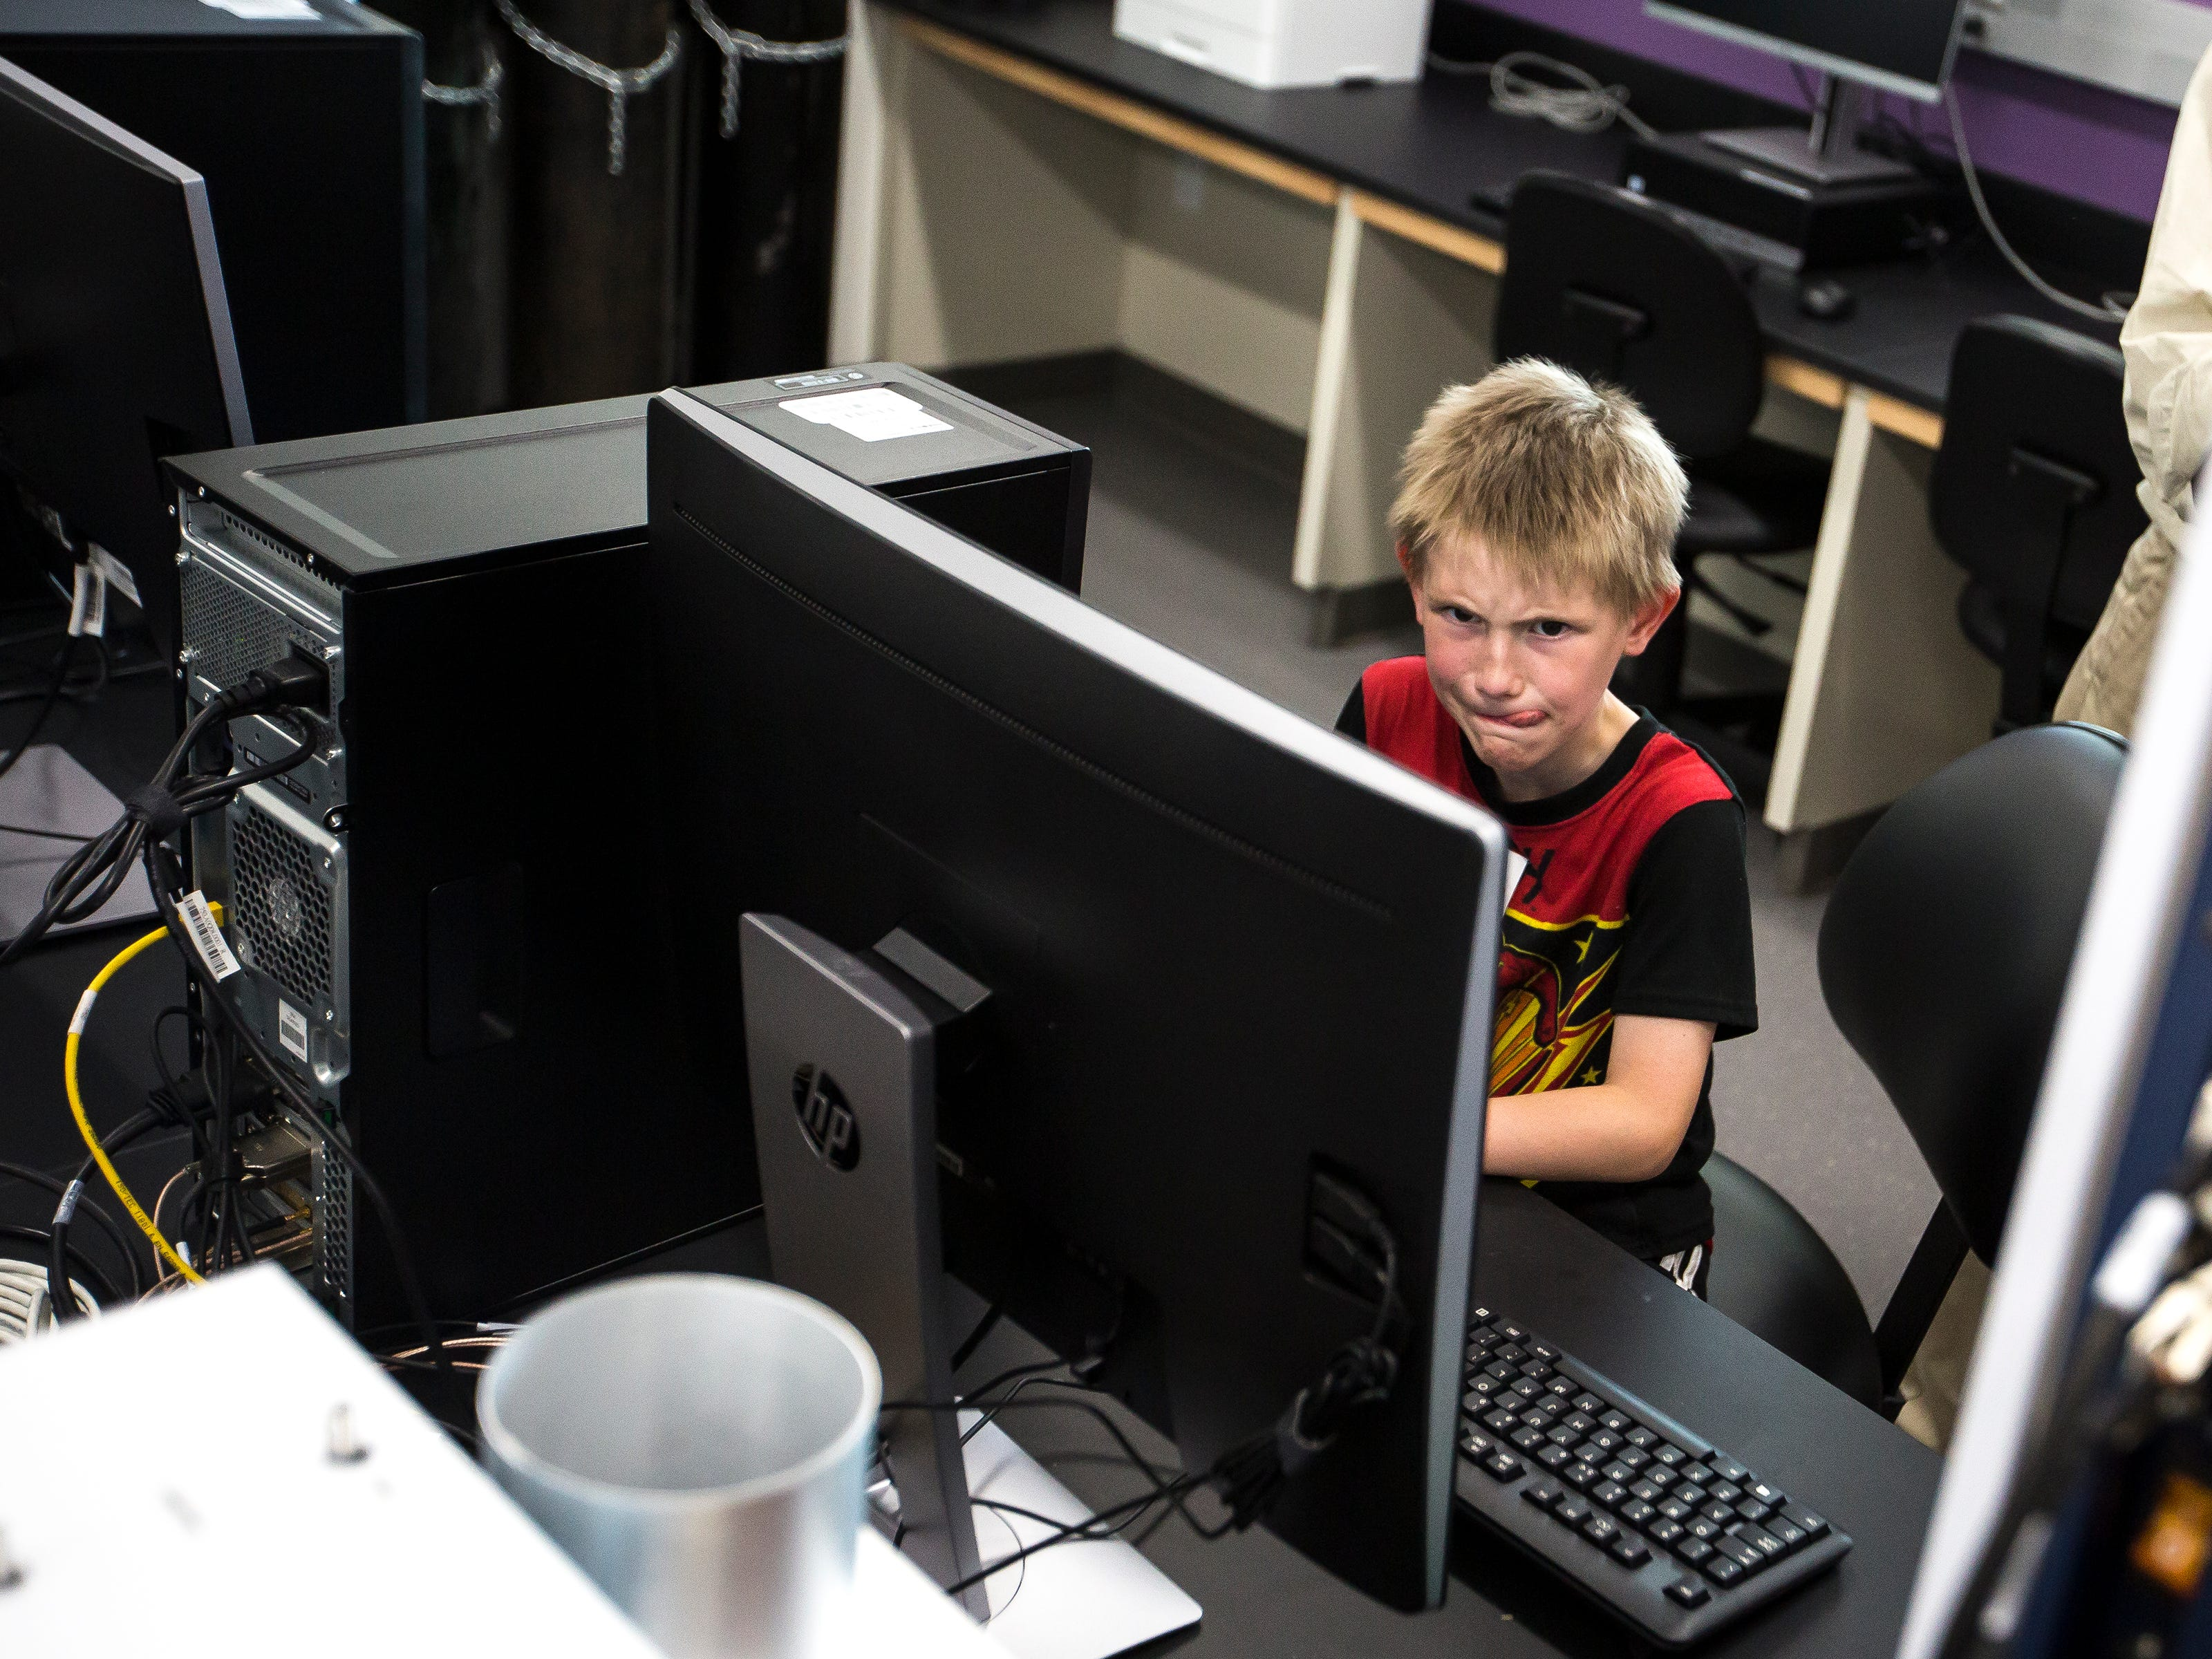 Hunter Olson-Megee of Junction City uses a computer to control a mass spectrometer used to identify unknown molecules during a tour of the Chemistry Biology Building at the University of Wisconsin-Stevens Point in Stevens Point, Wis., Sept. 14, 2018.